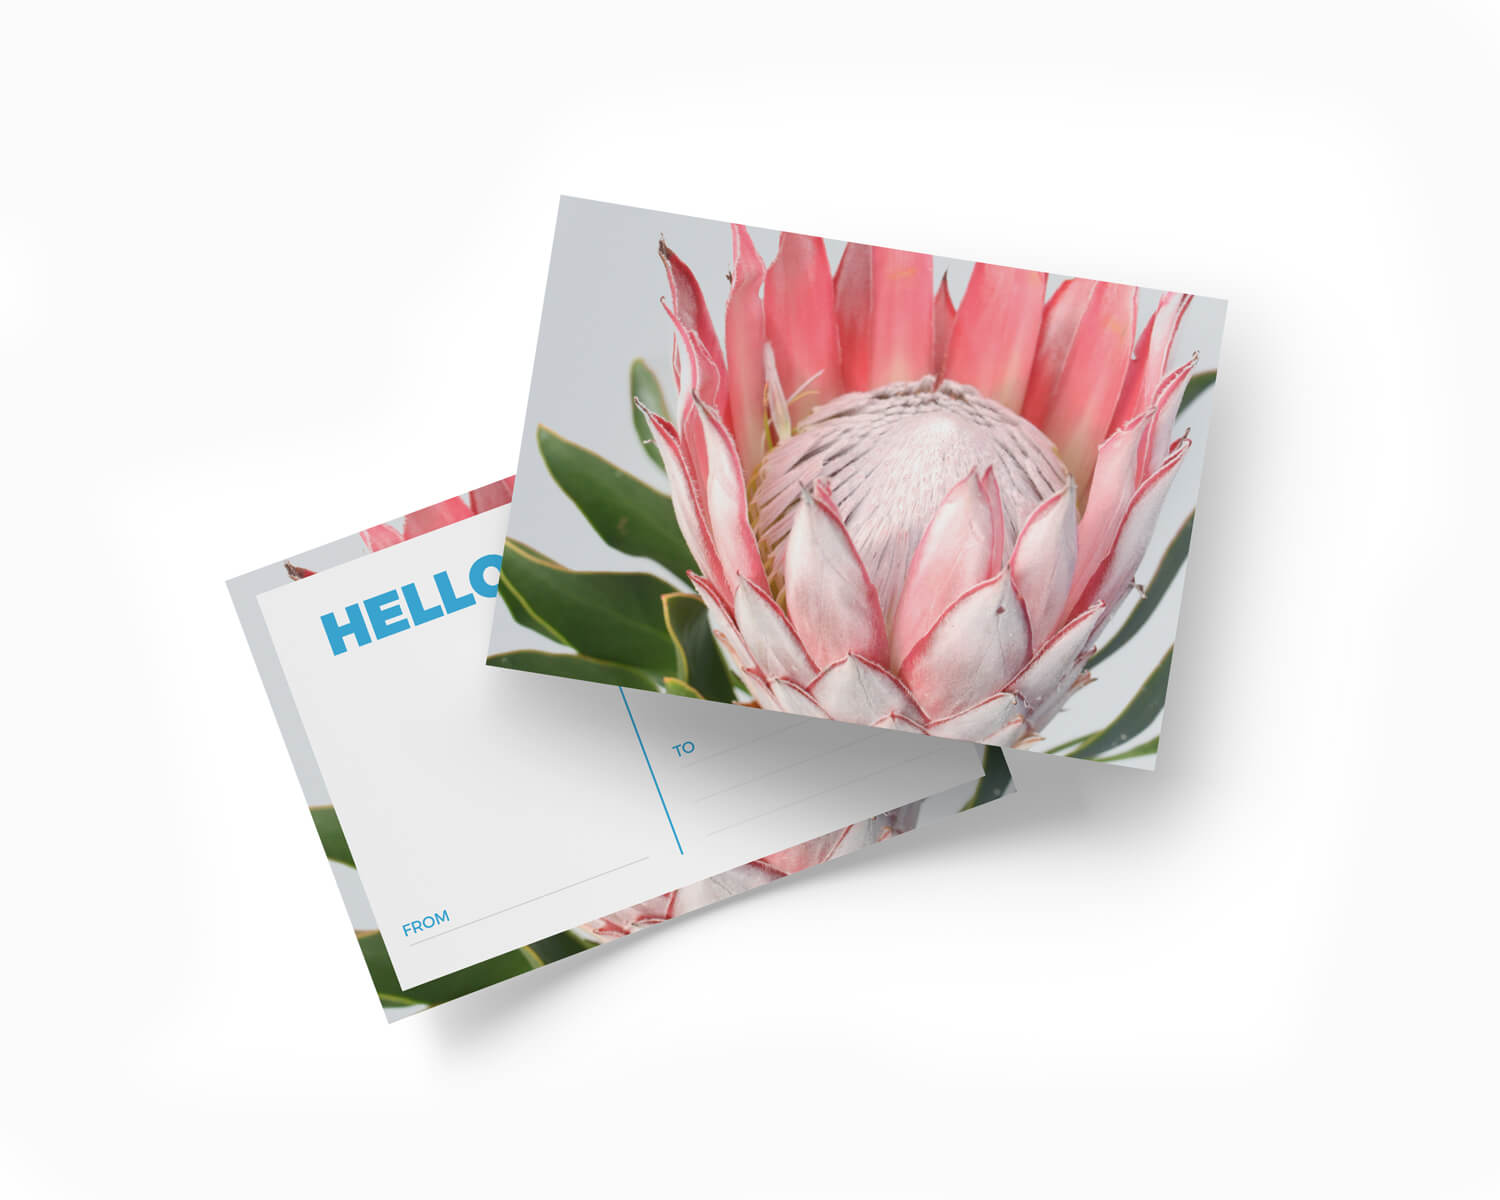 Printed postcard with a protea